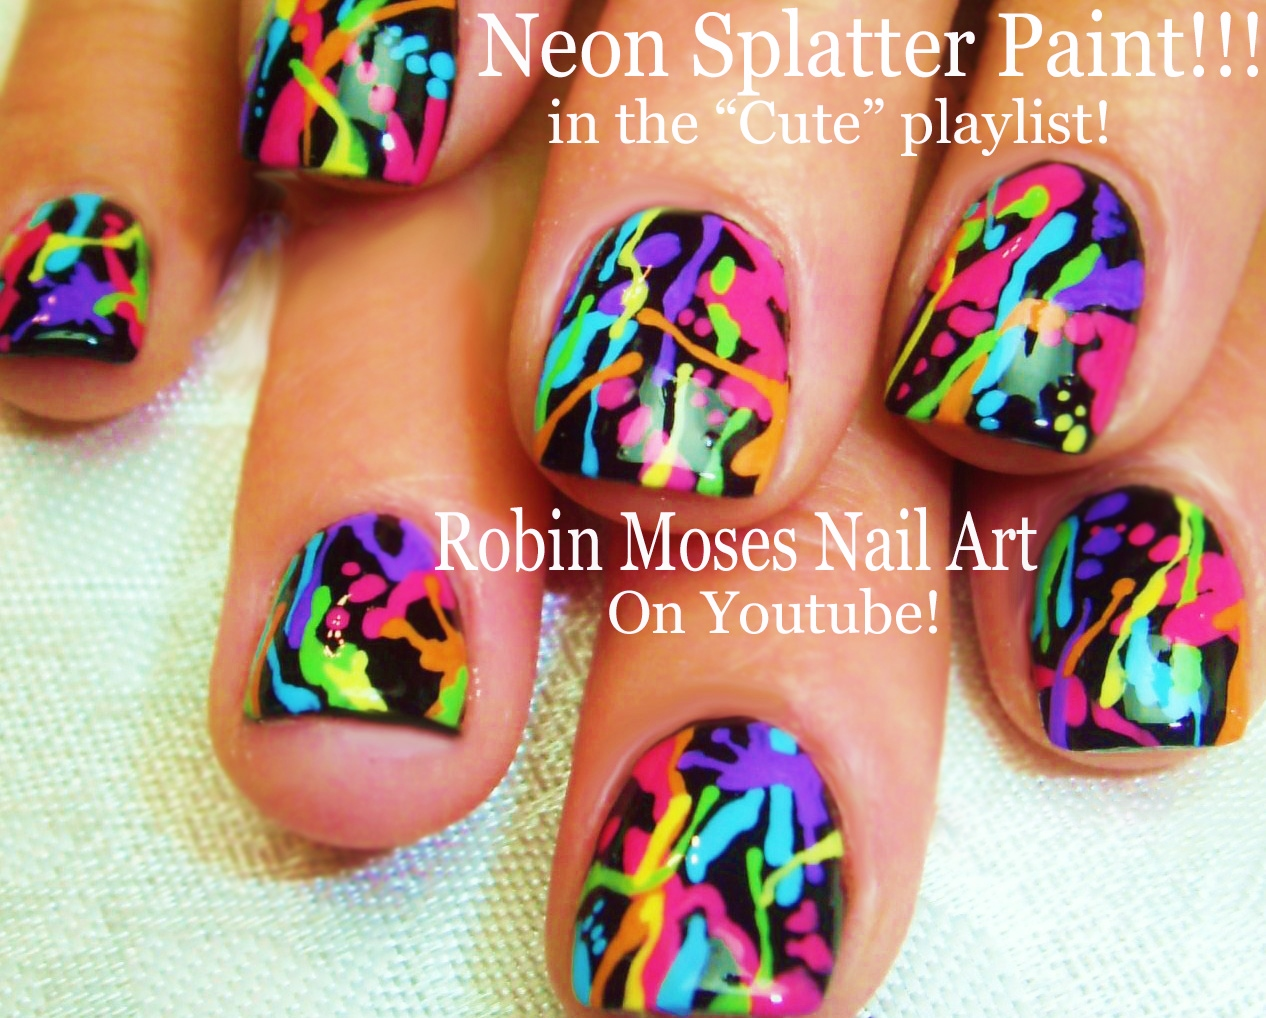 Robin moses nail art color dripping nail design splatterpaint play now prinsesfo Choice Image